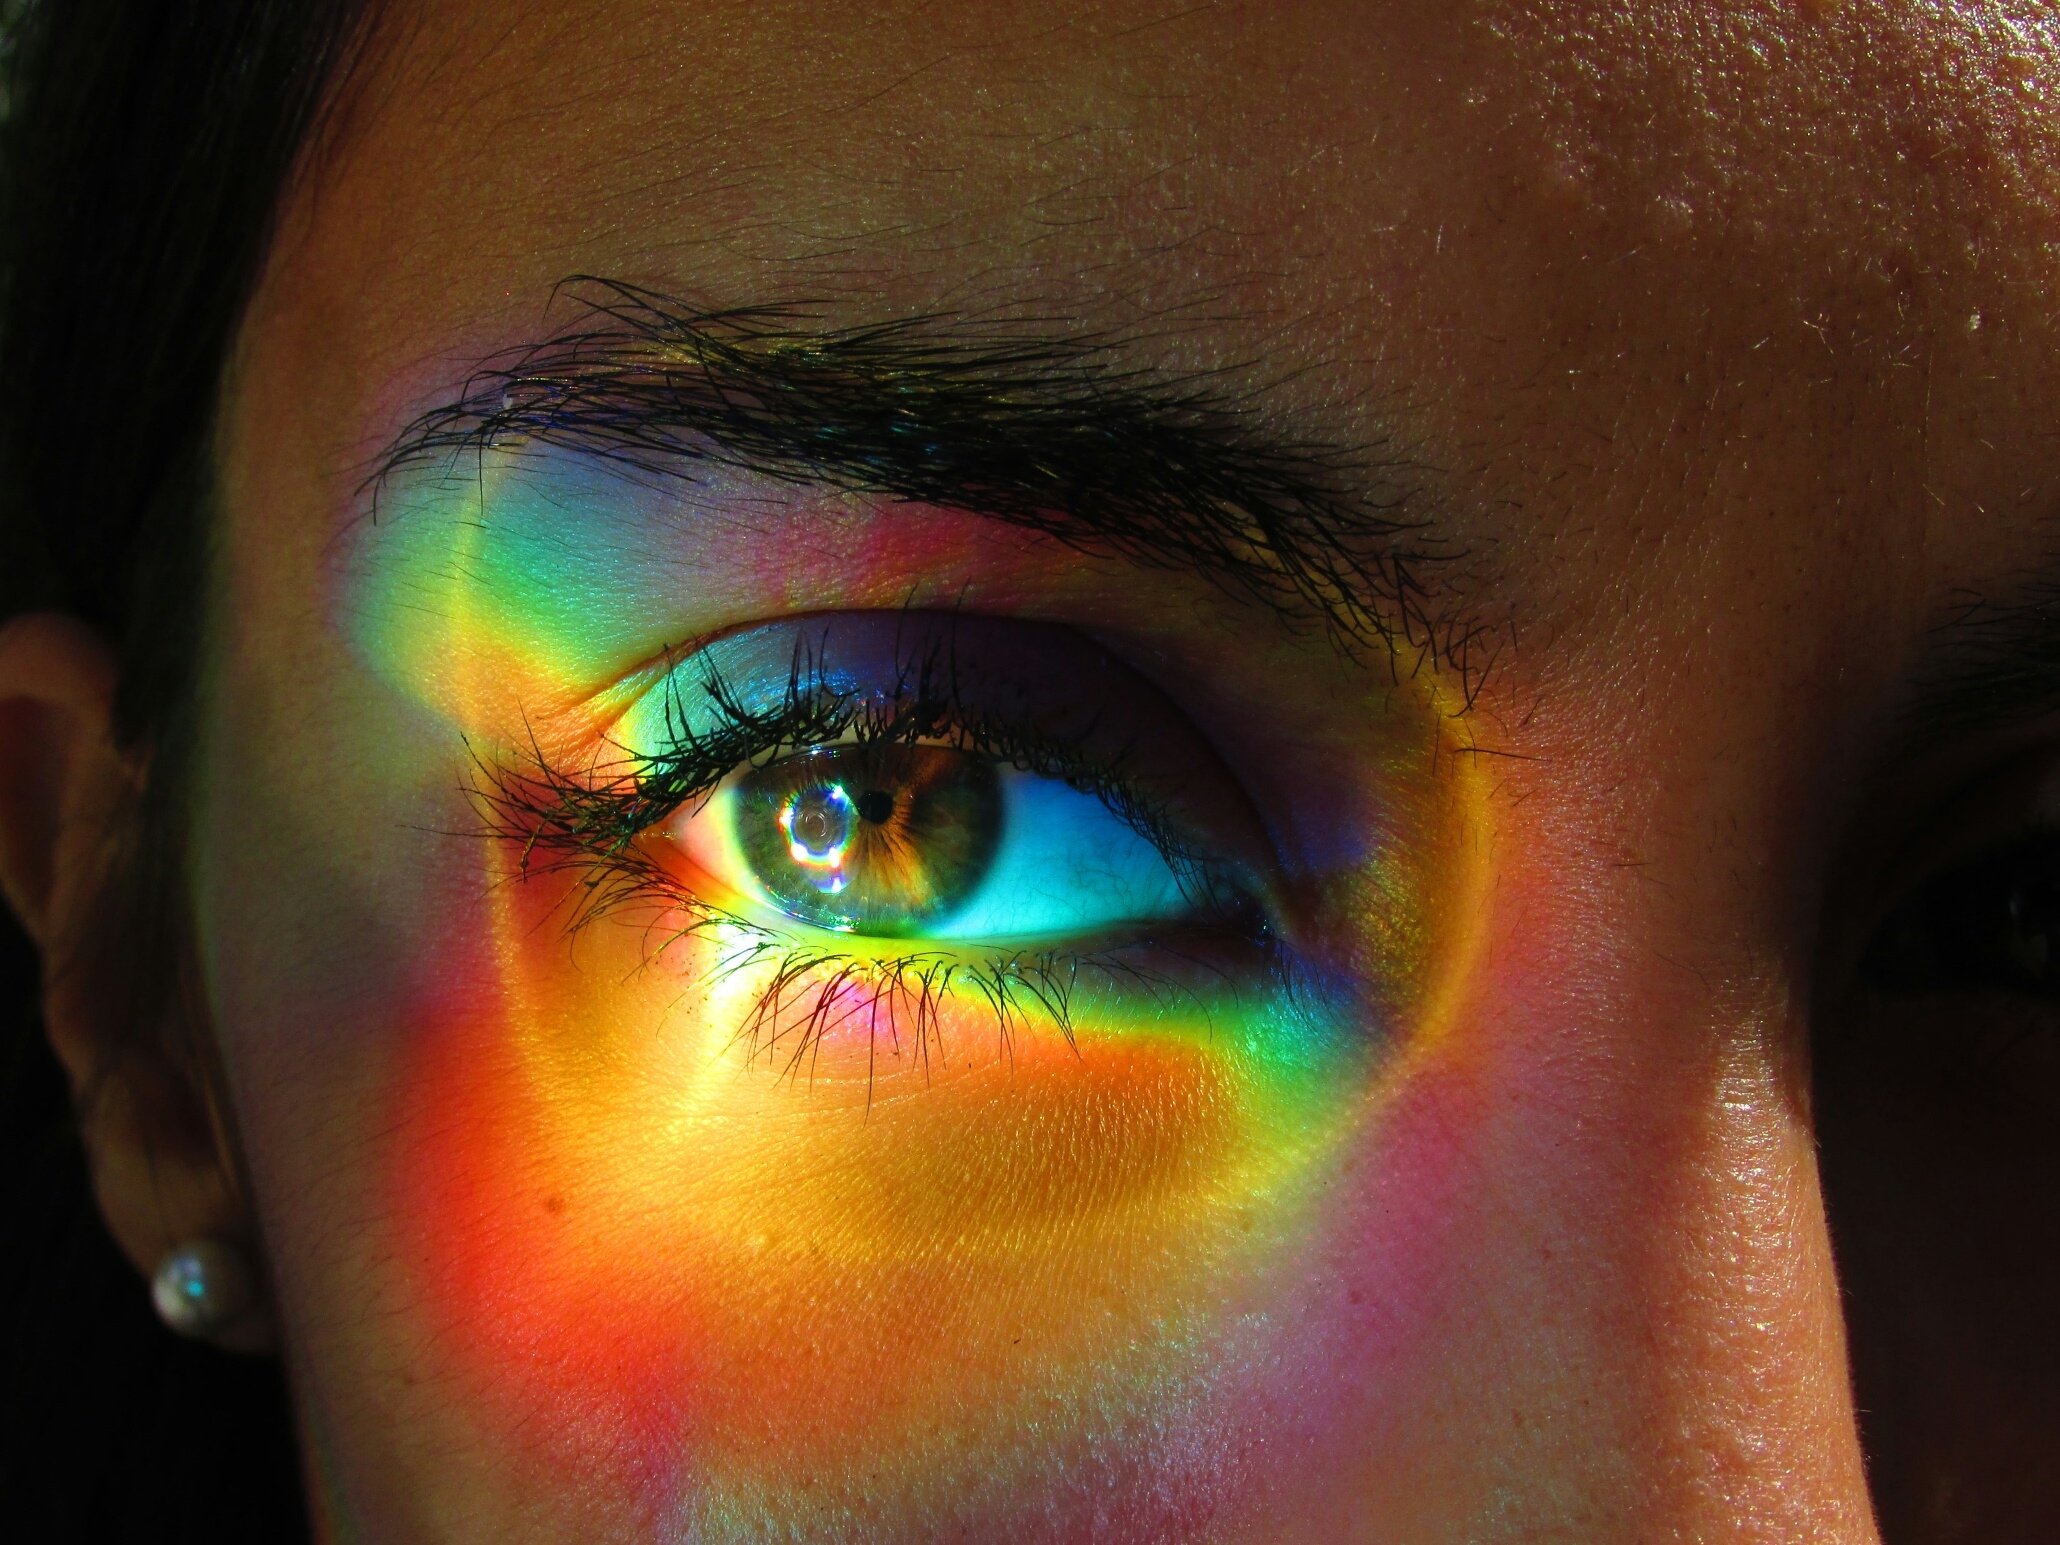 What Are The Properties Of The Visible Light Spectrum